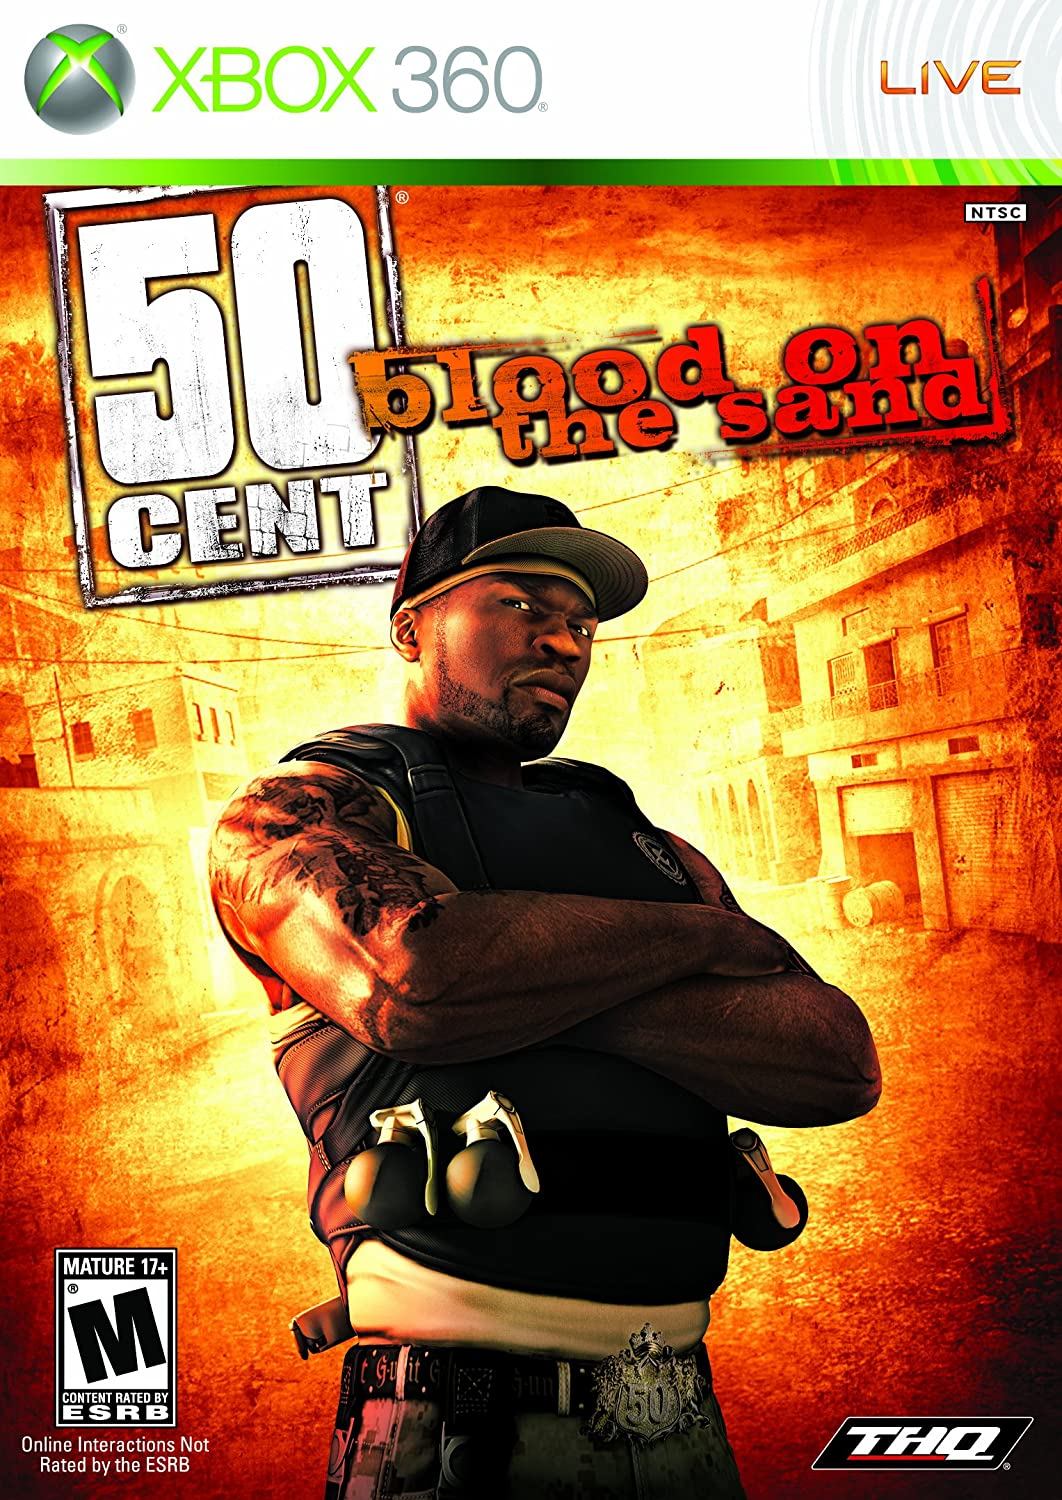 xbox 360 3rd person shooters